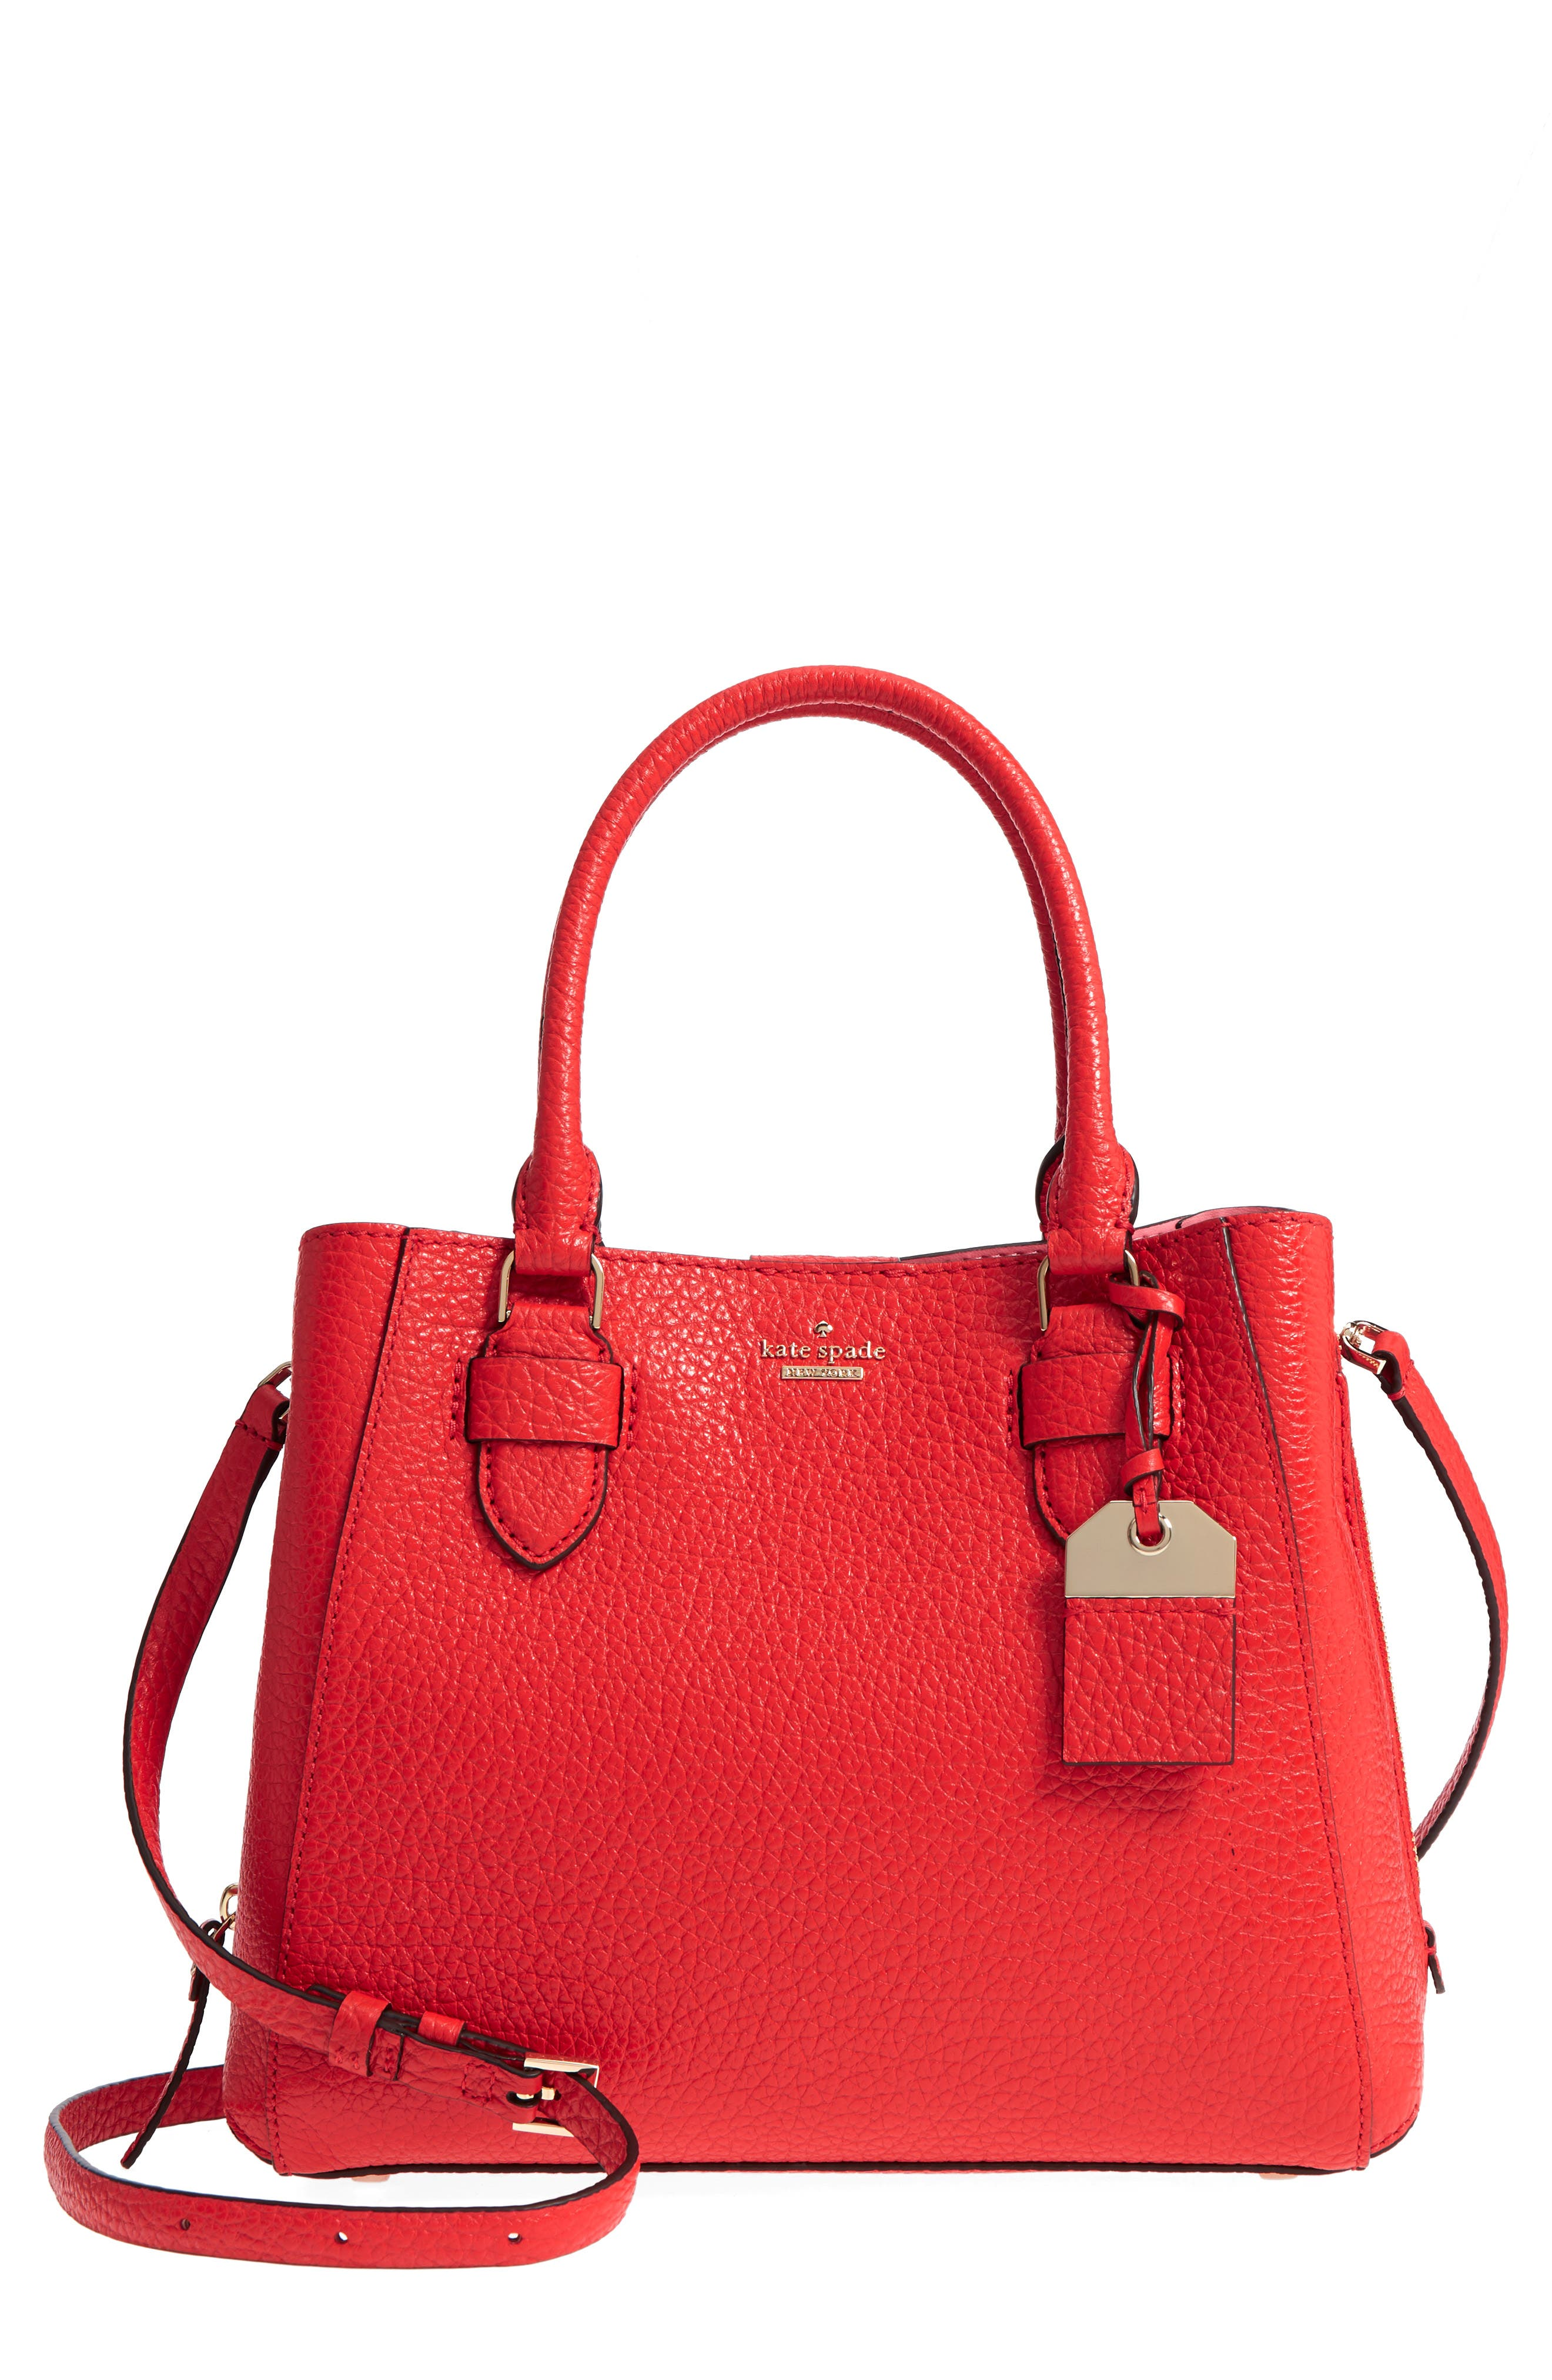 carter street - aliana leather satchel,                         Main,                         color, Picnic Red